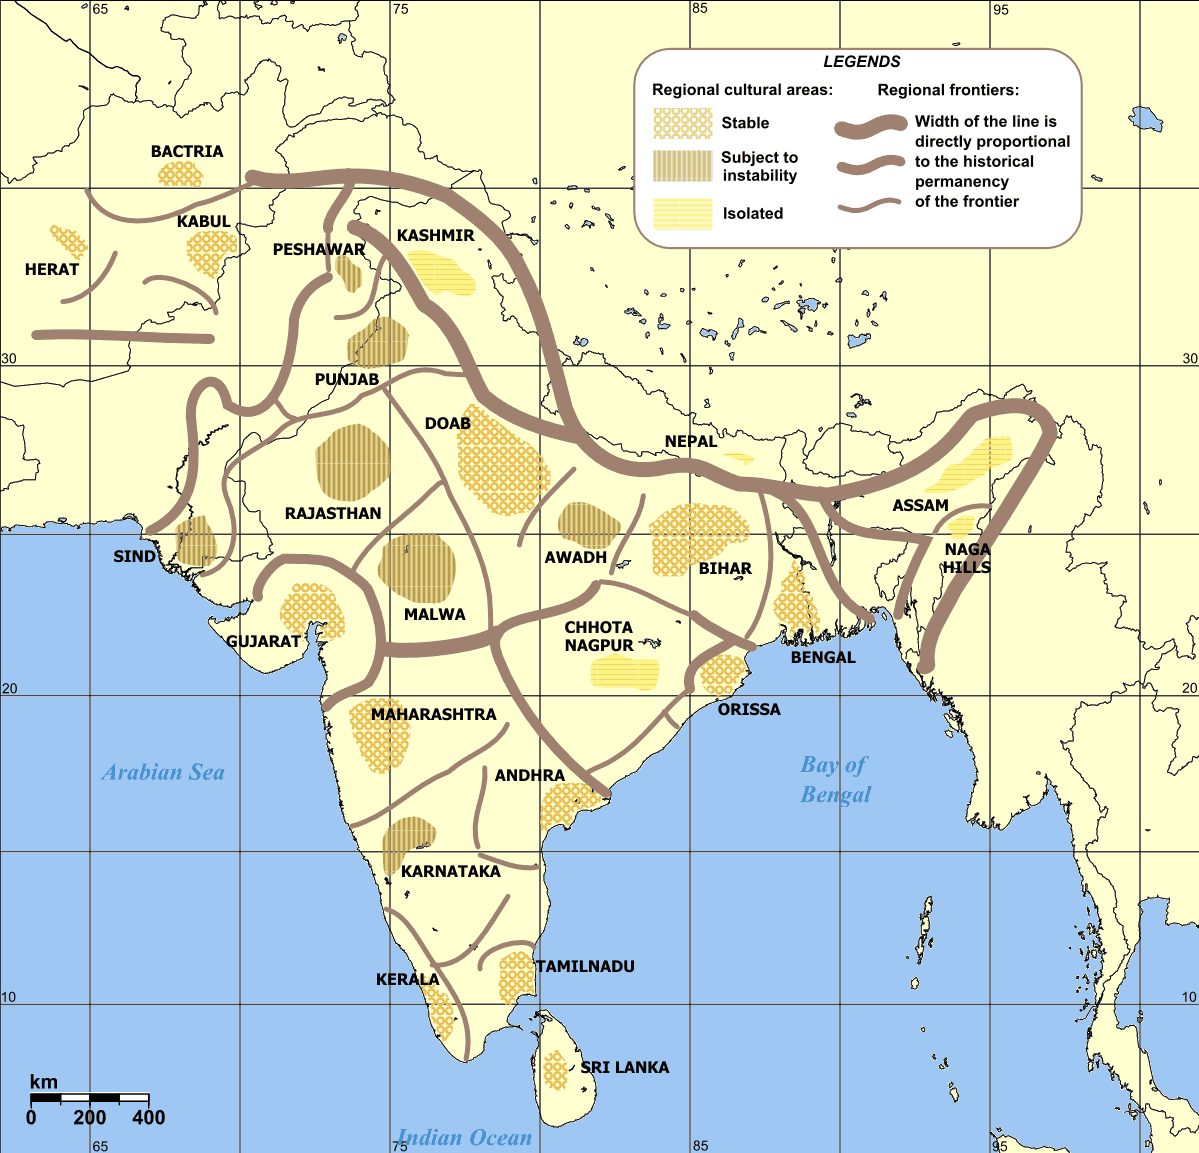 Cultural Regional Areas of India